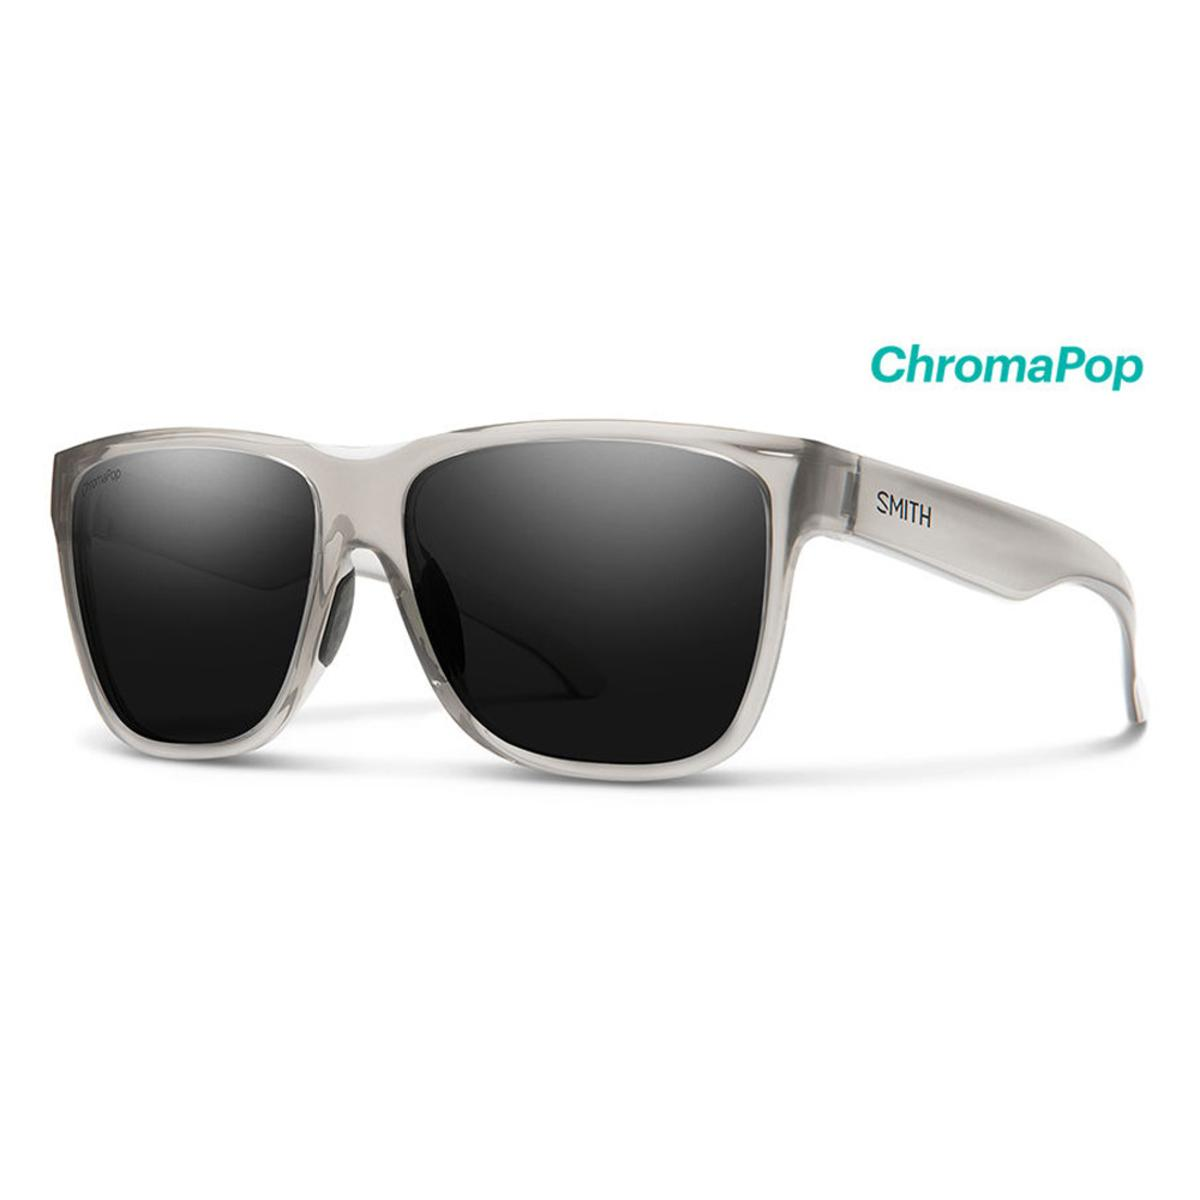 0049c18833 Smith Optics Lowdown XL 2 Sunglasses Chromapop Polarized Black - Cloud  Frame - The Warming Store